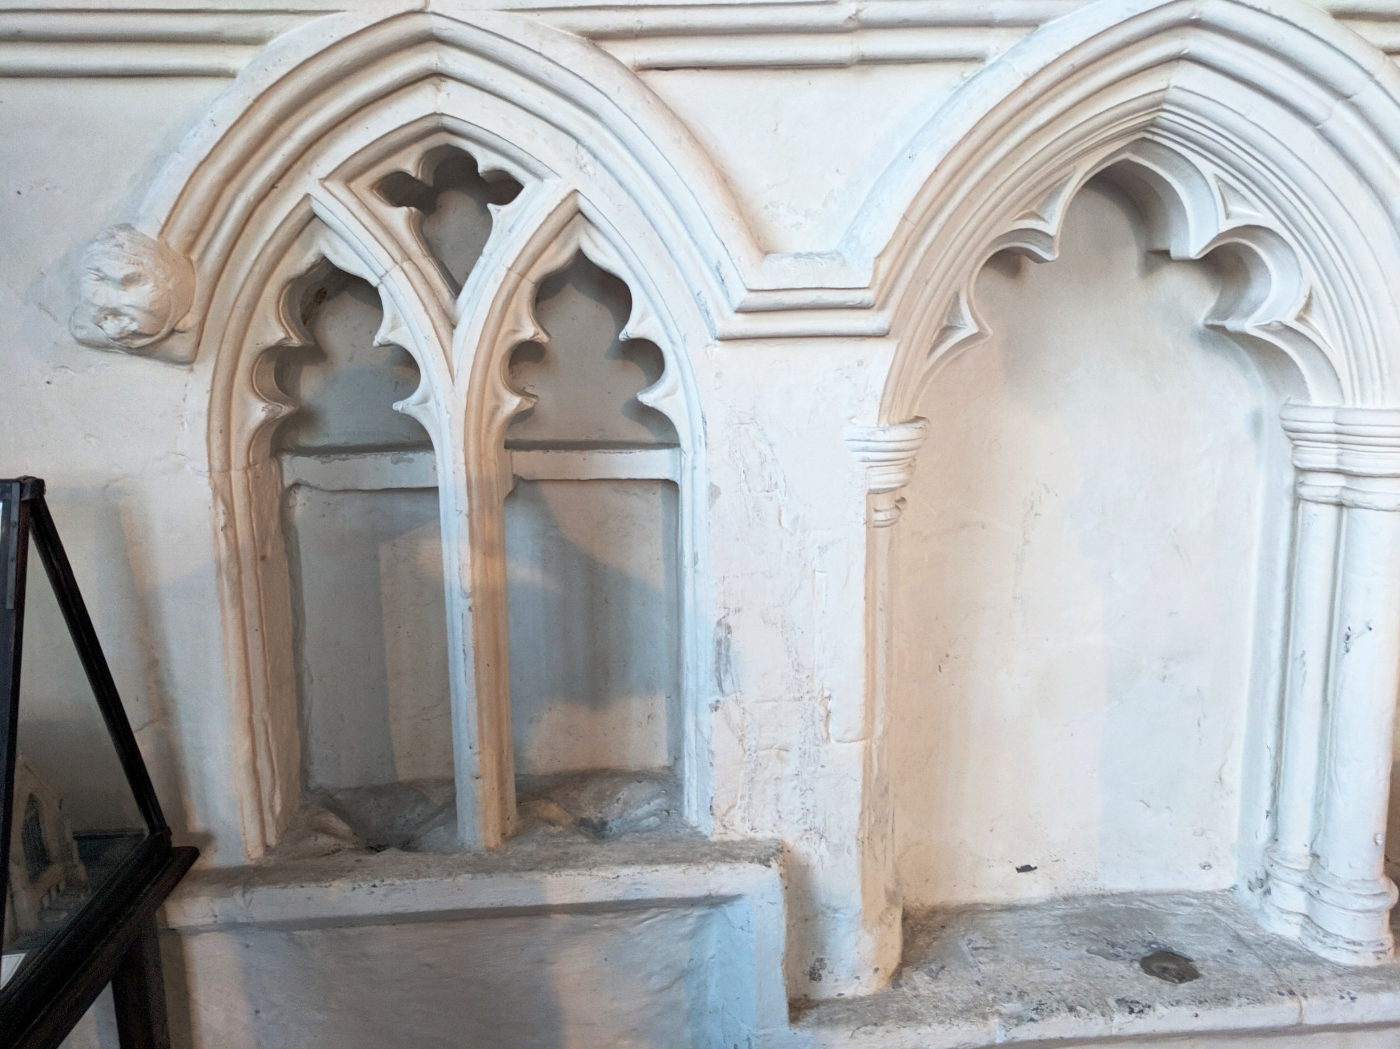 The interesting double piscina and one of the sedilia arches in the chancel